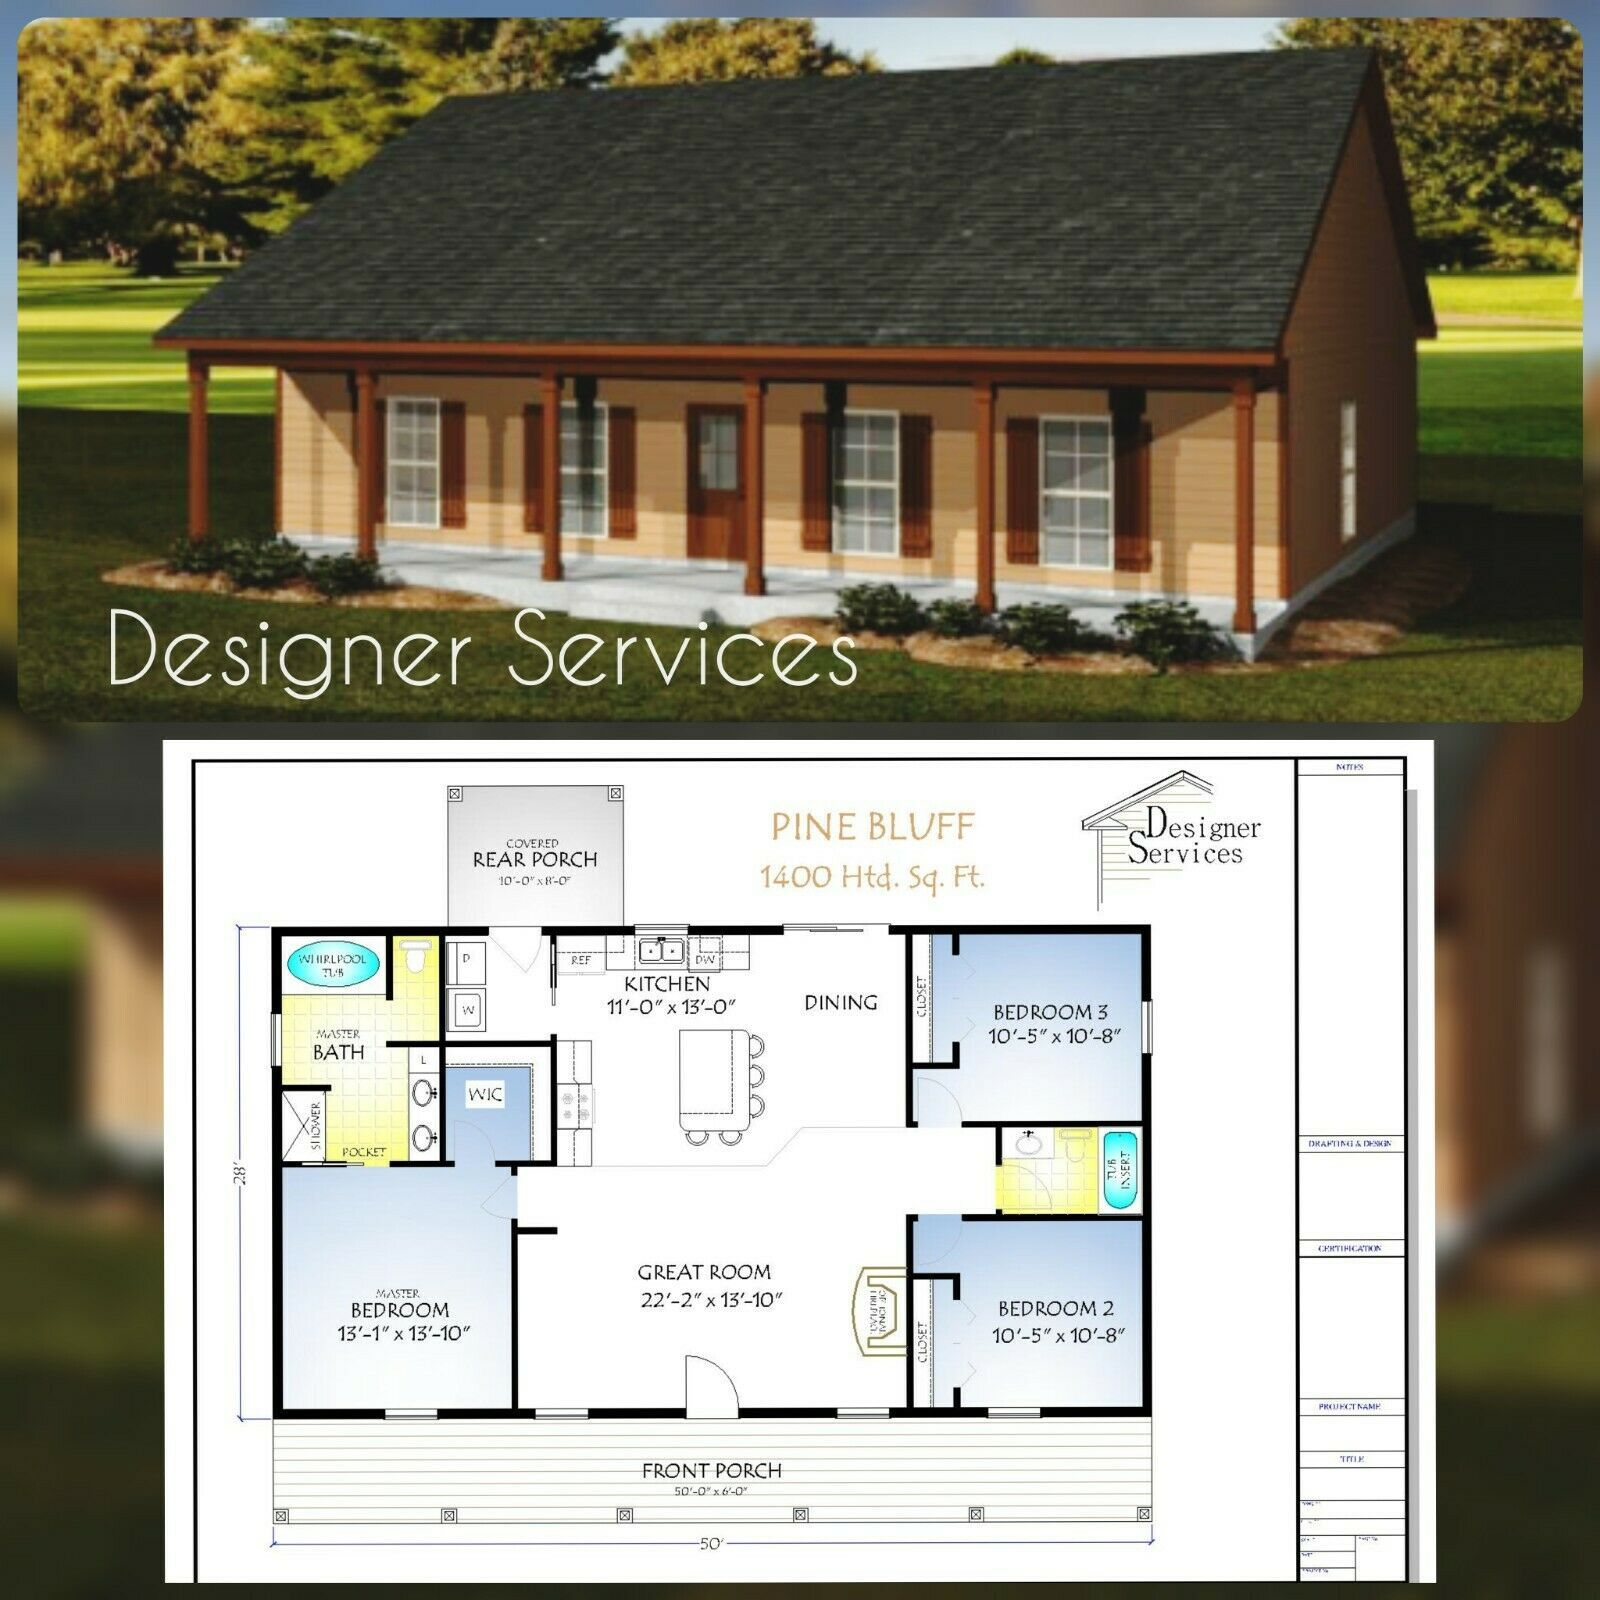 The Pine Bluff Home House Building Plans 1400 Sq Ft In 2021 Building Plans House Pole Barn House Plans Building A House